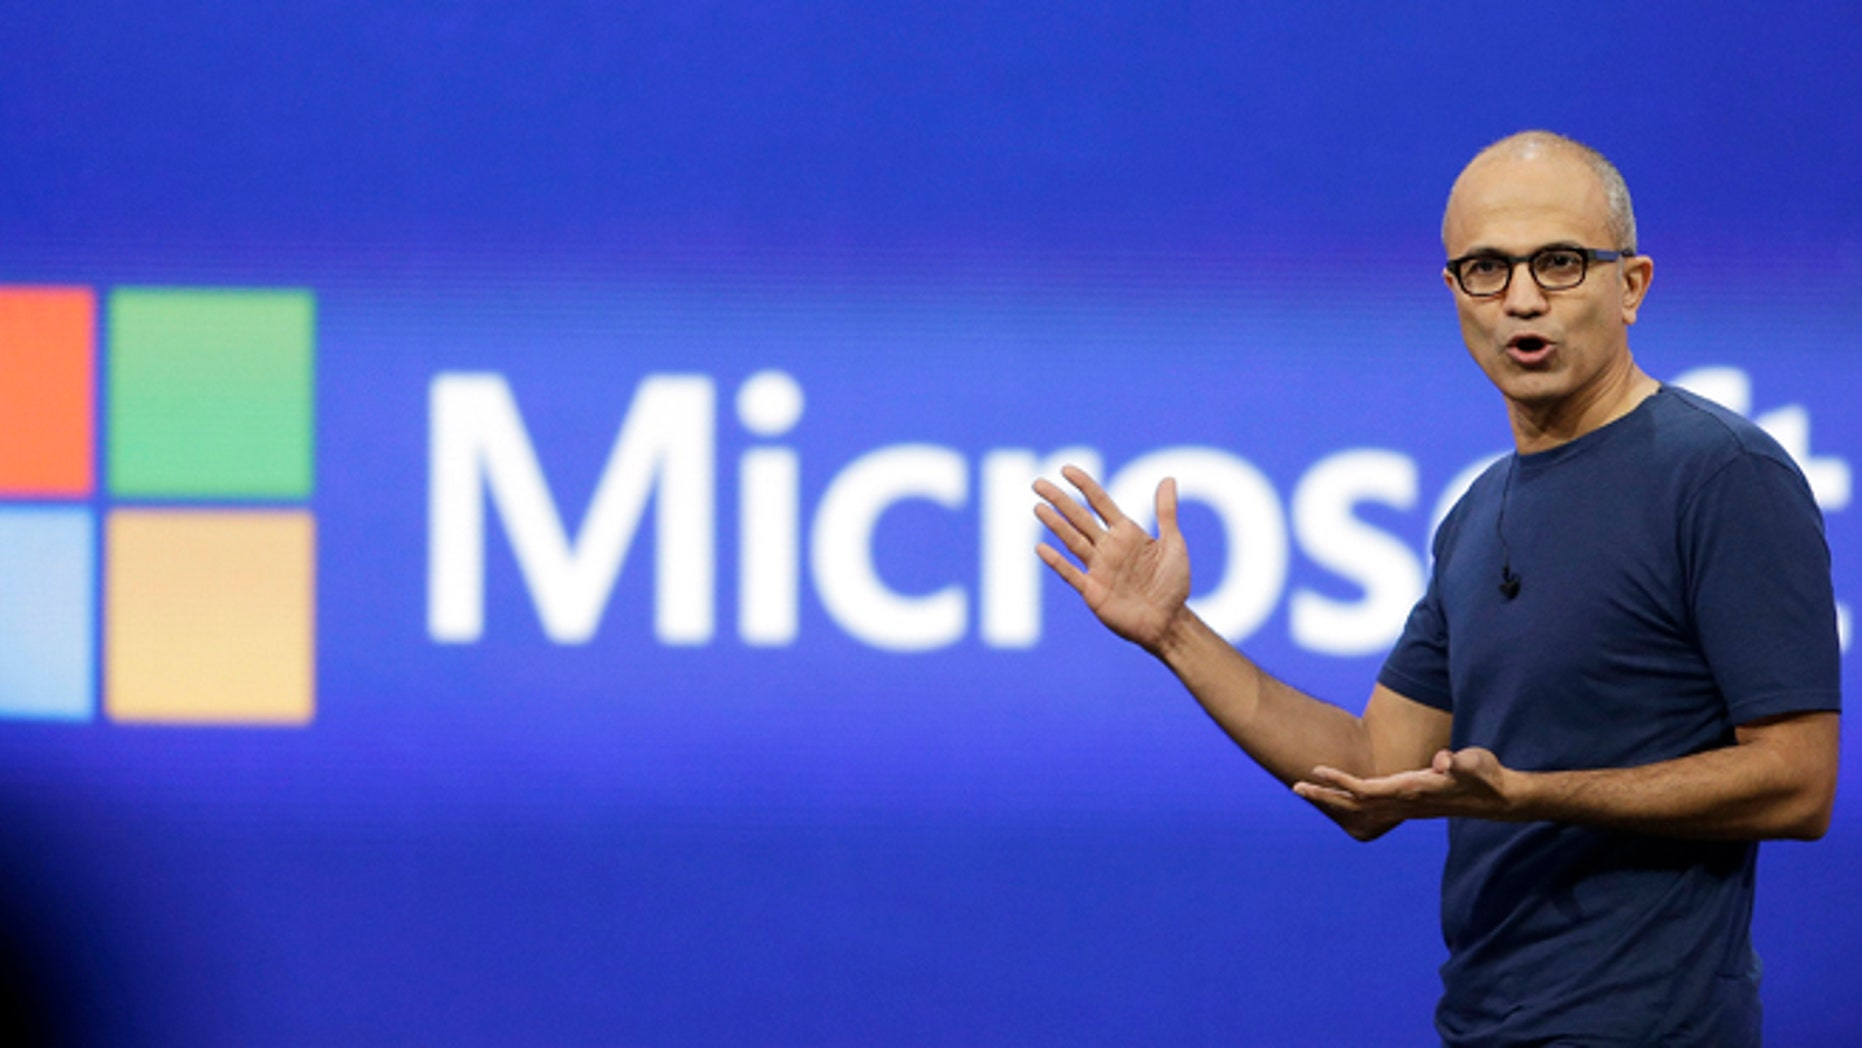 April 2, 2014: Microsoft CEO Satya Nadella gestures during the keynote address of the Build Conference in San Francisco.